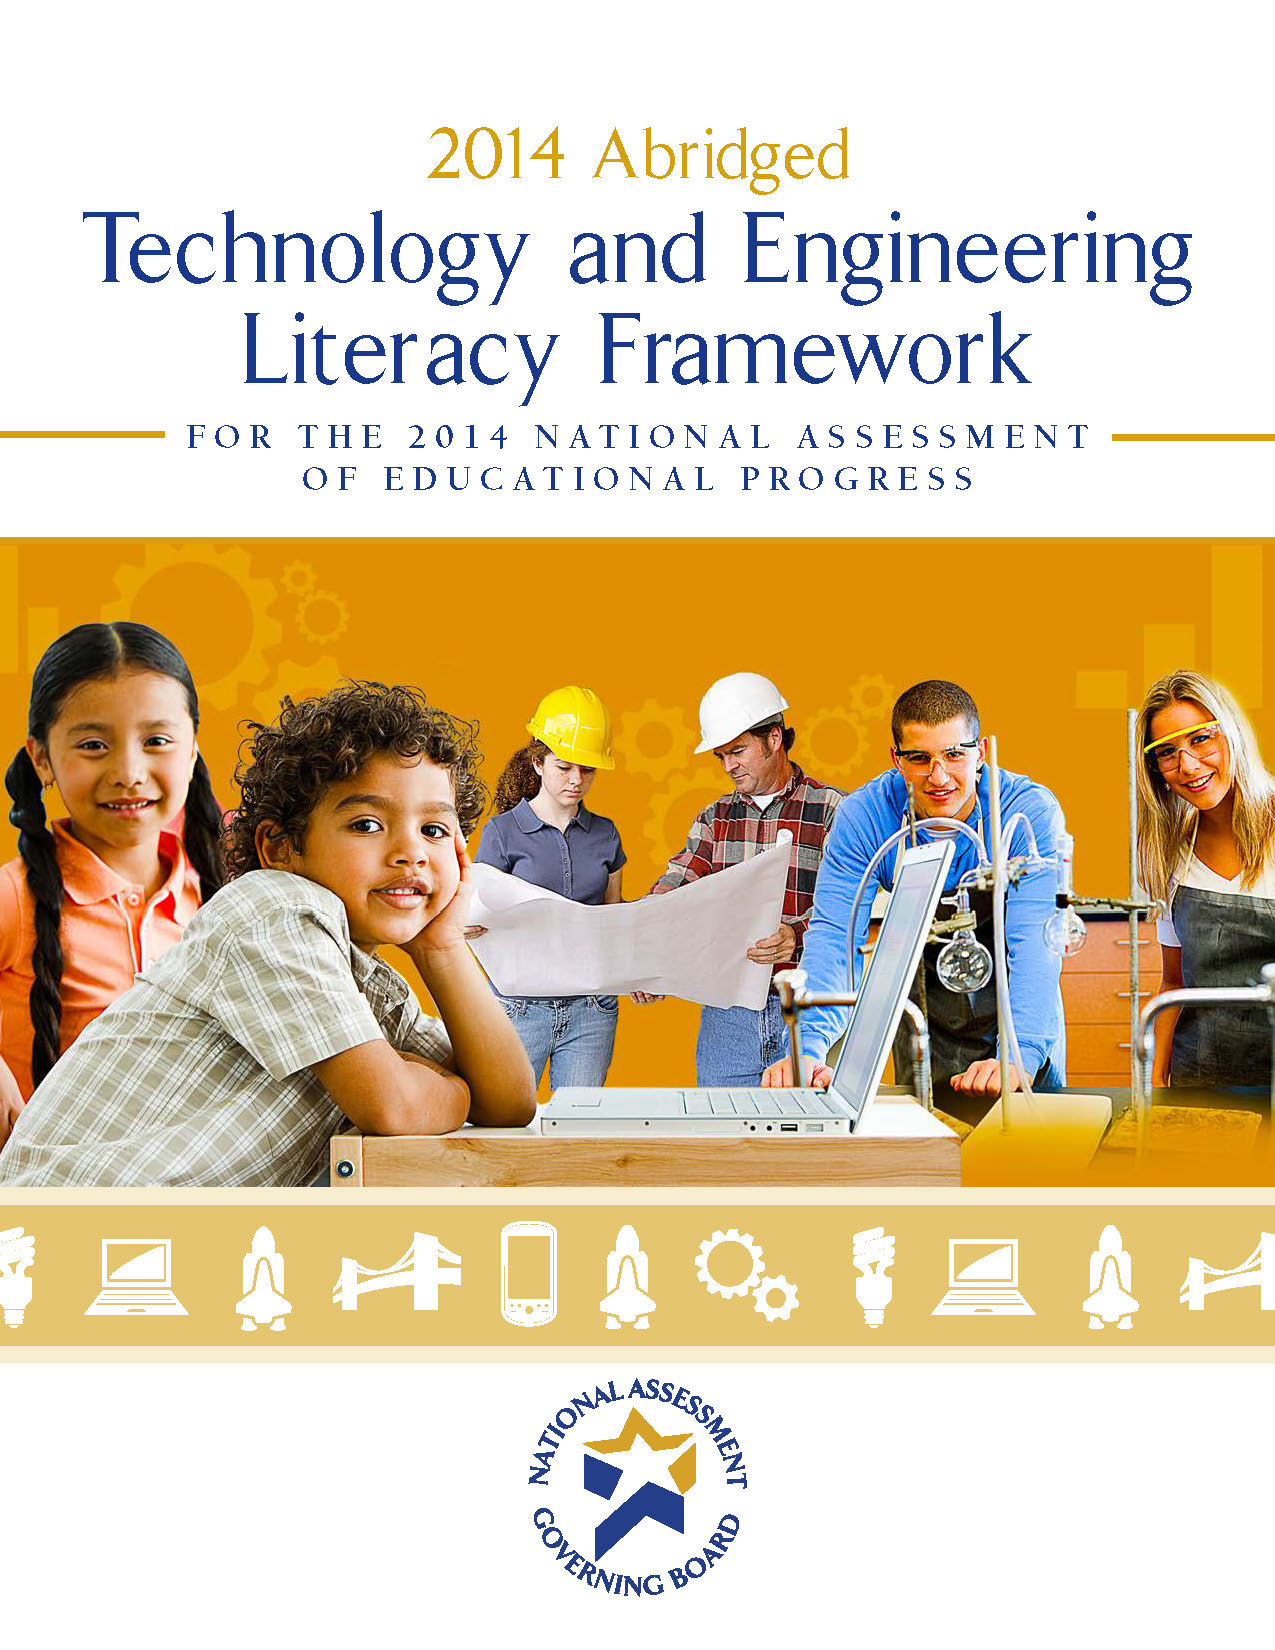 2014 Technology and Engineering Literacy Framework (Abridged)